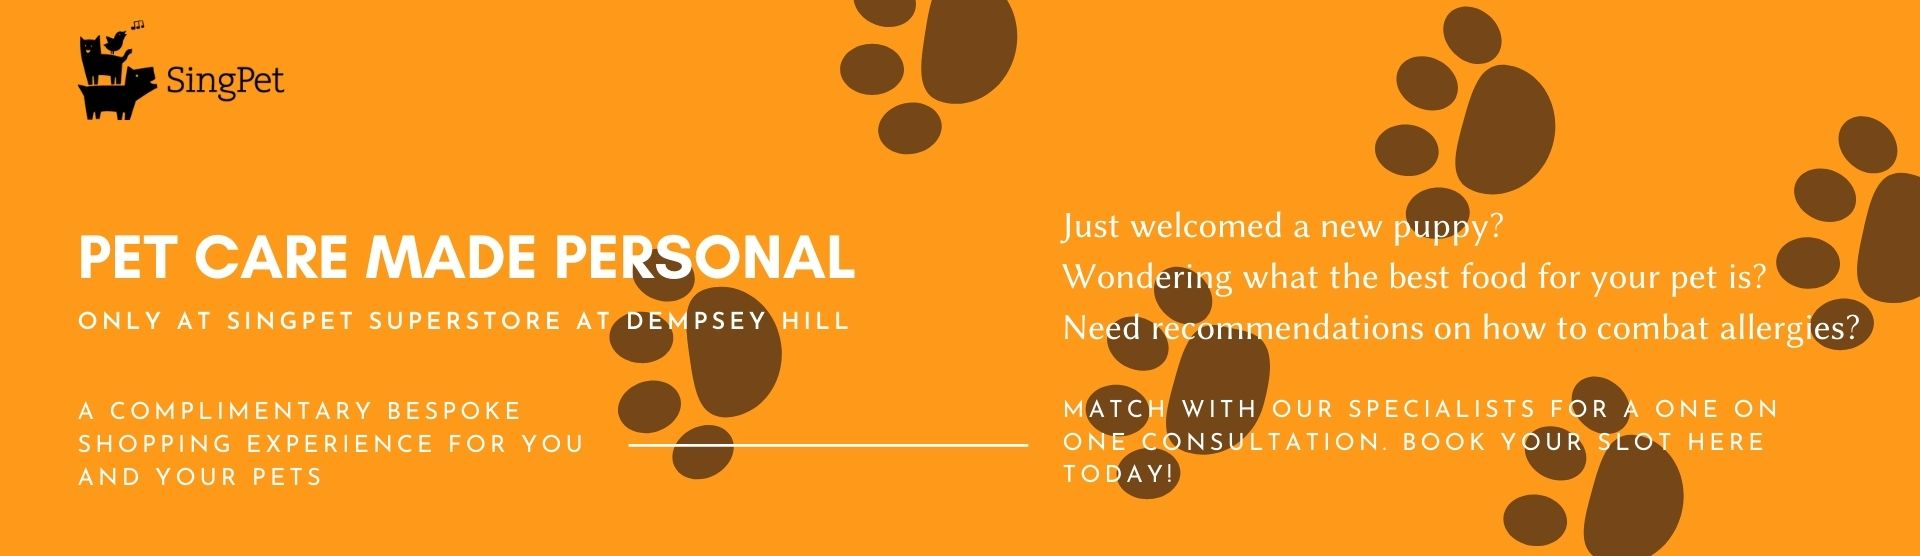 Pet care made personal